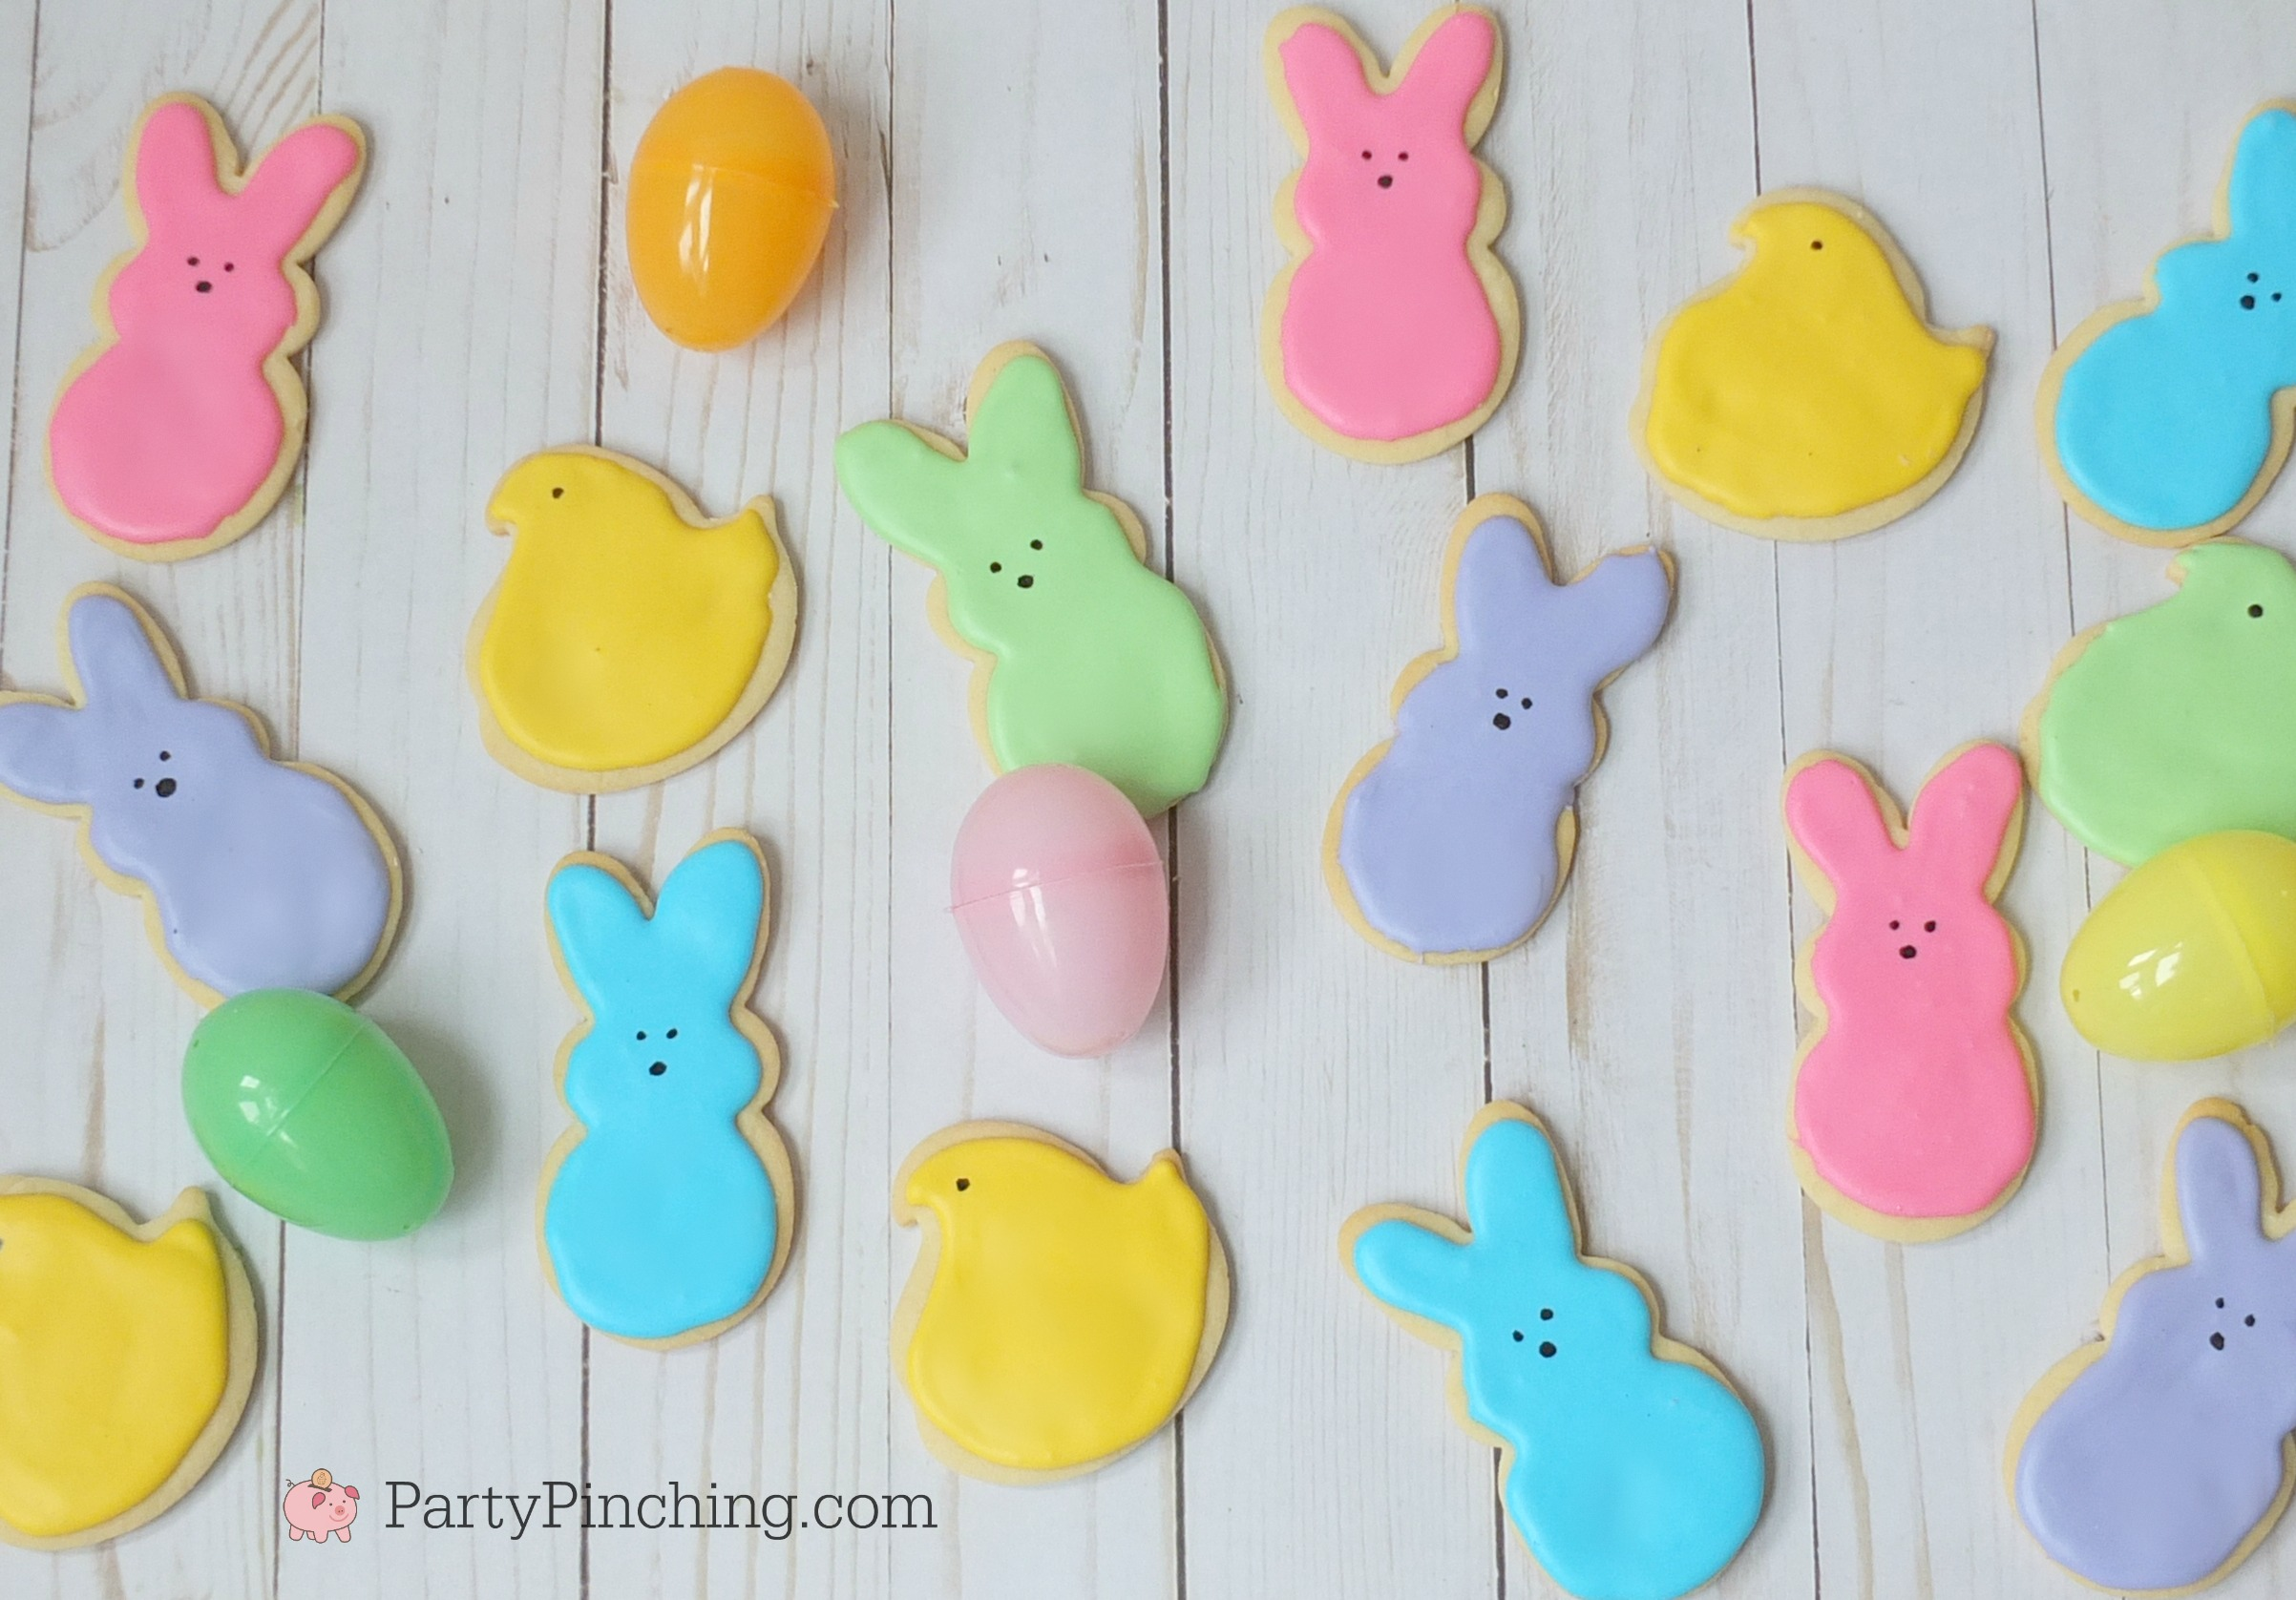 Peeps, Peep cookies, Easter dessert ideas spring peeps, cute food, cute peeps, easter peeps, bunny peeps, easter party ideas, peep party